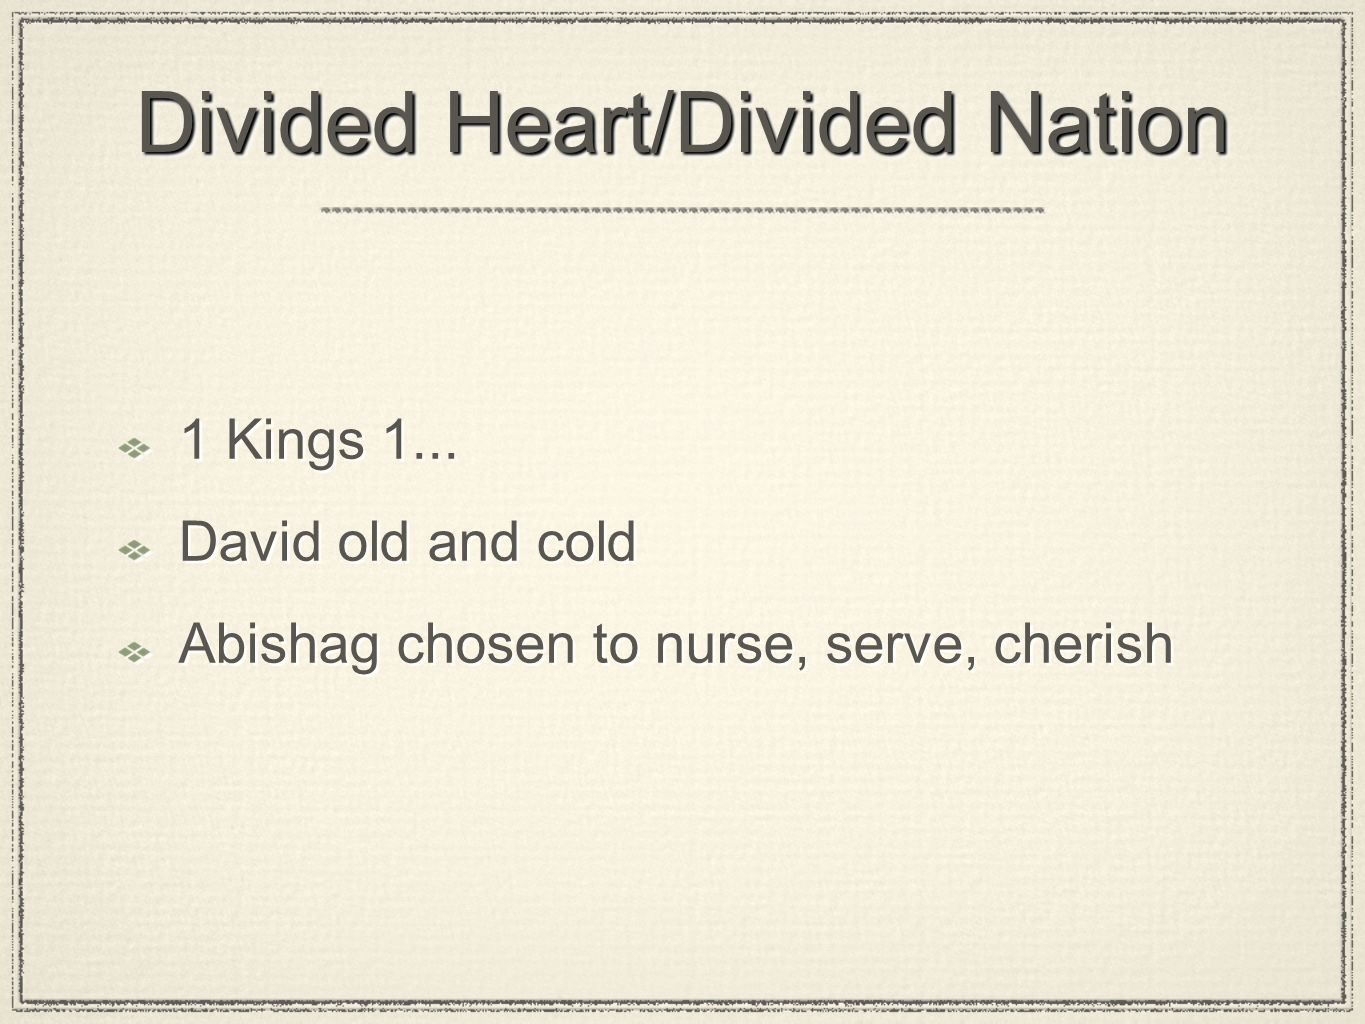 Divided Heart/Divided Nation 1 Kings 1...